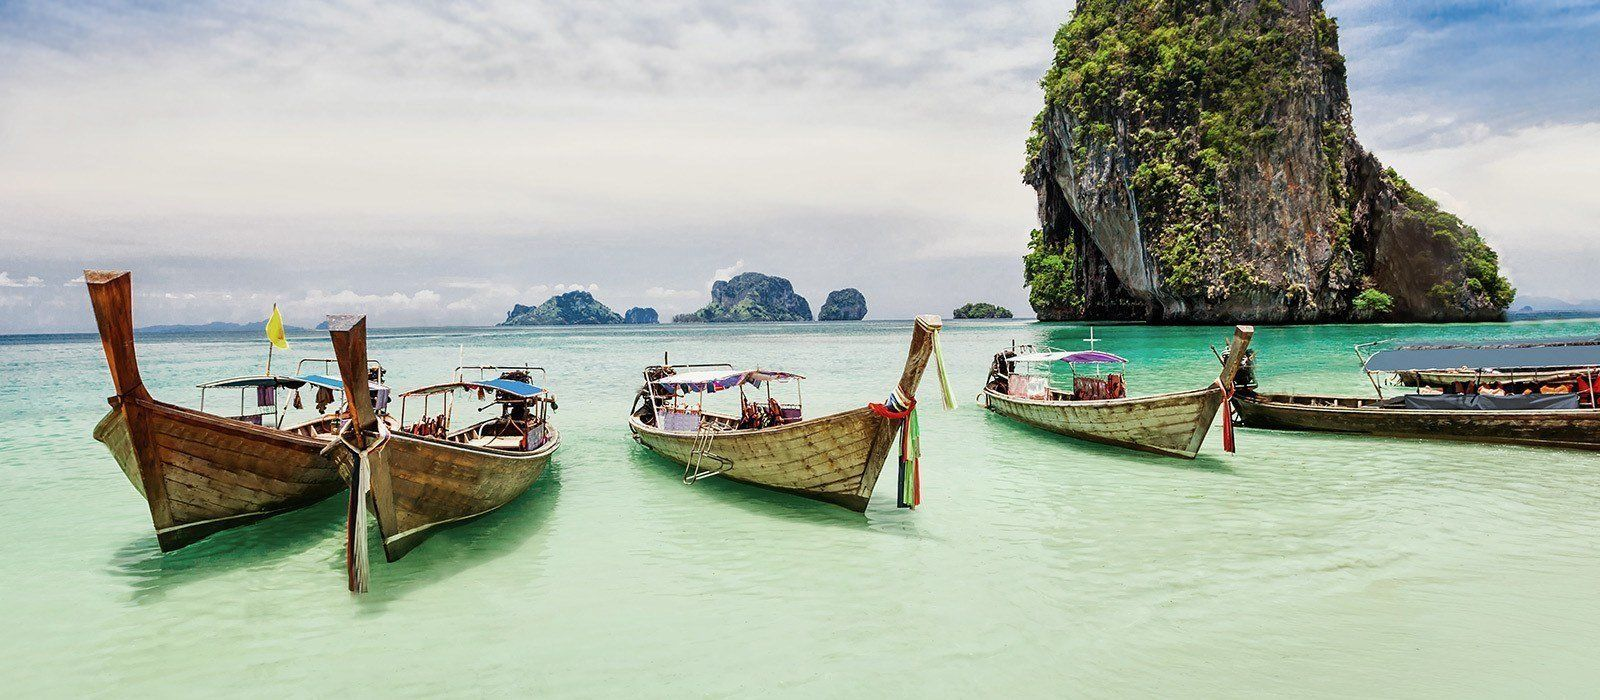 Paradise: Dream Beaches of Thailand Tour Trip 1